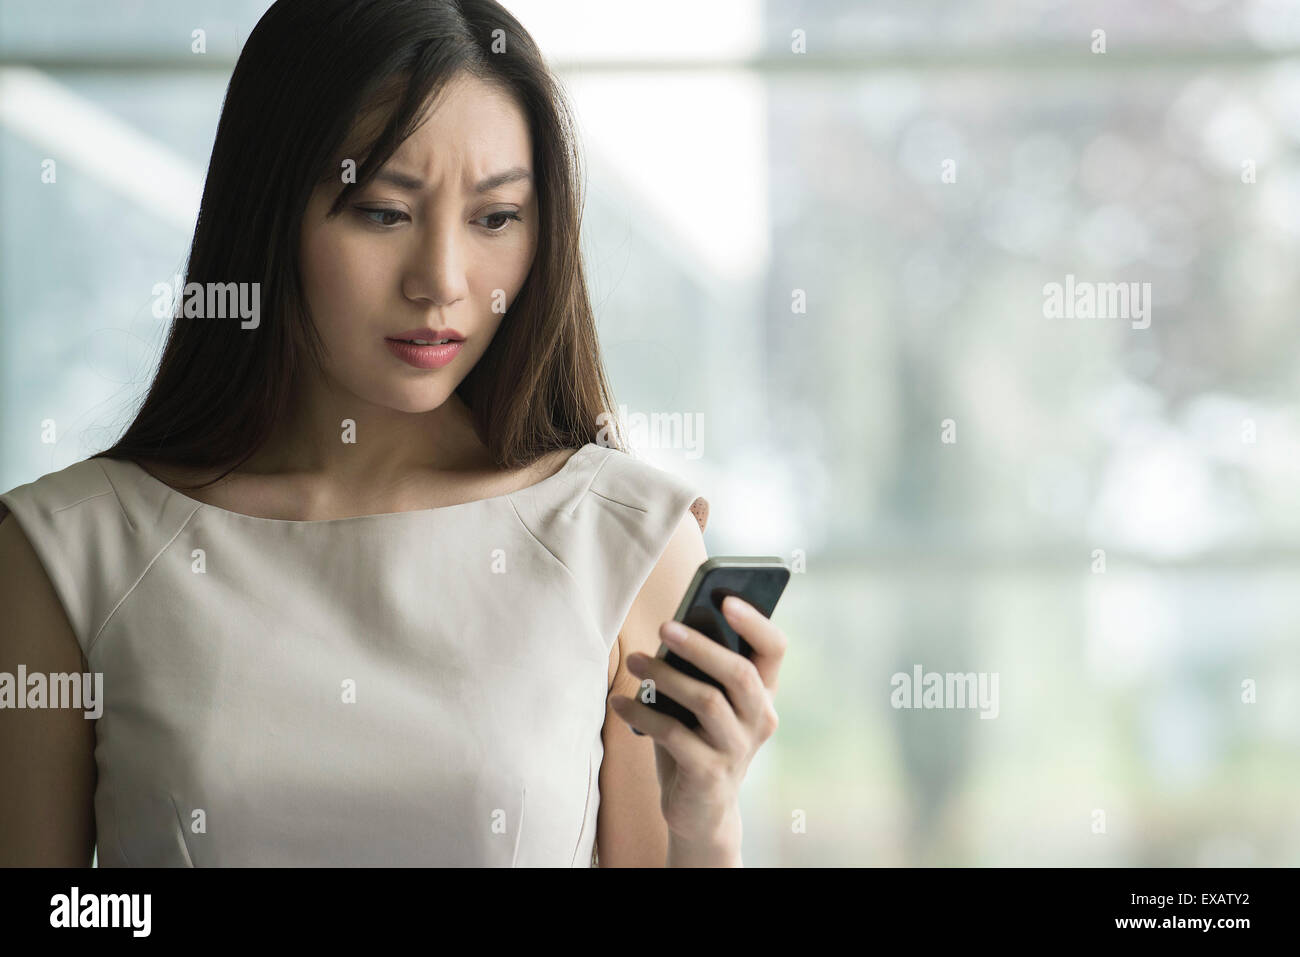 Woman receiving bad news on smartphone - Stock Image